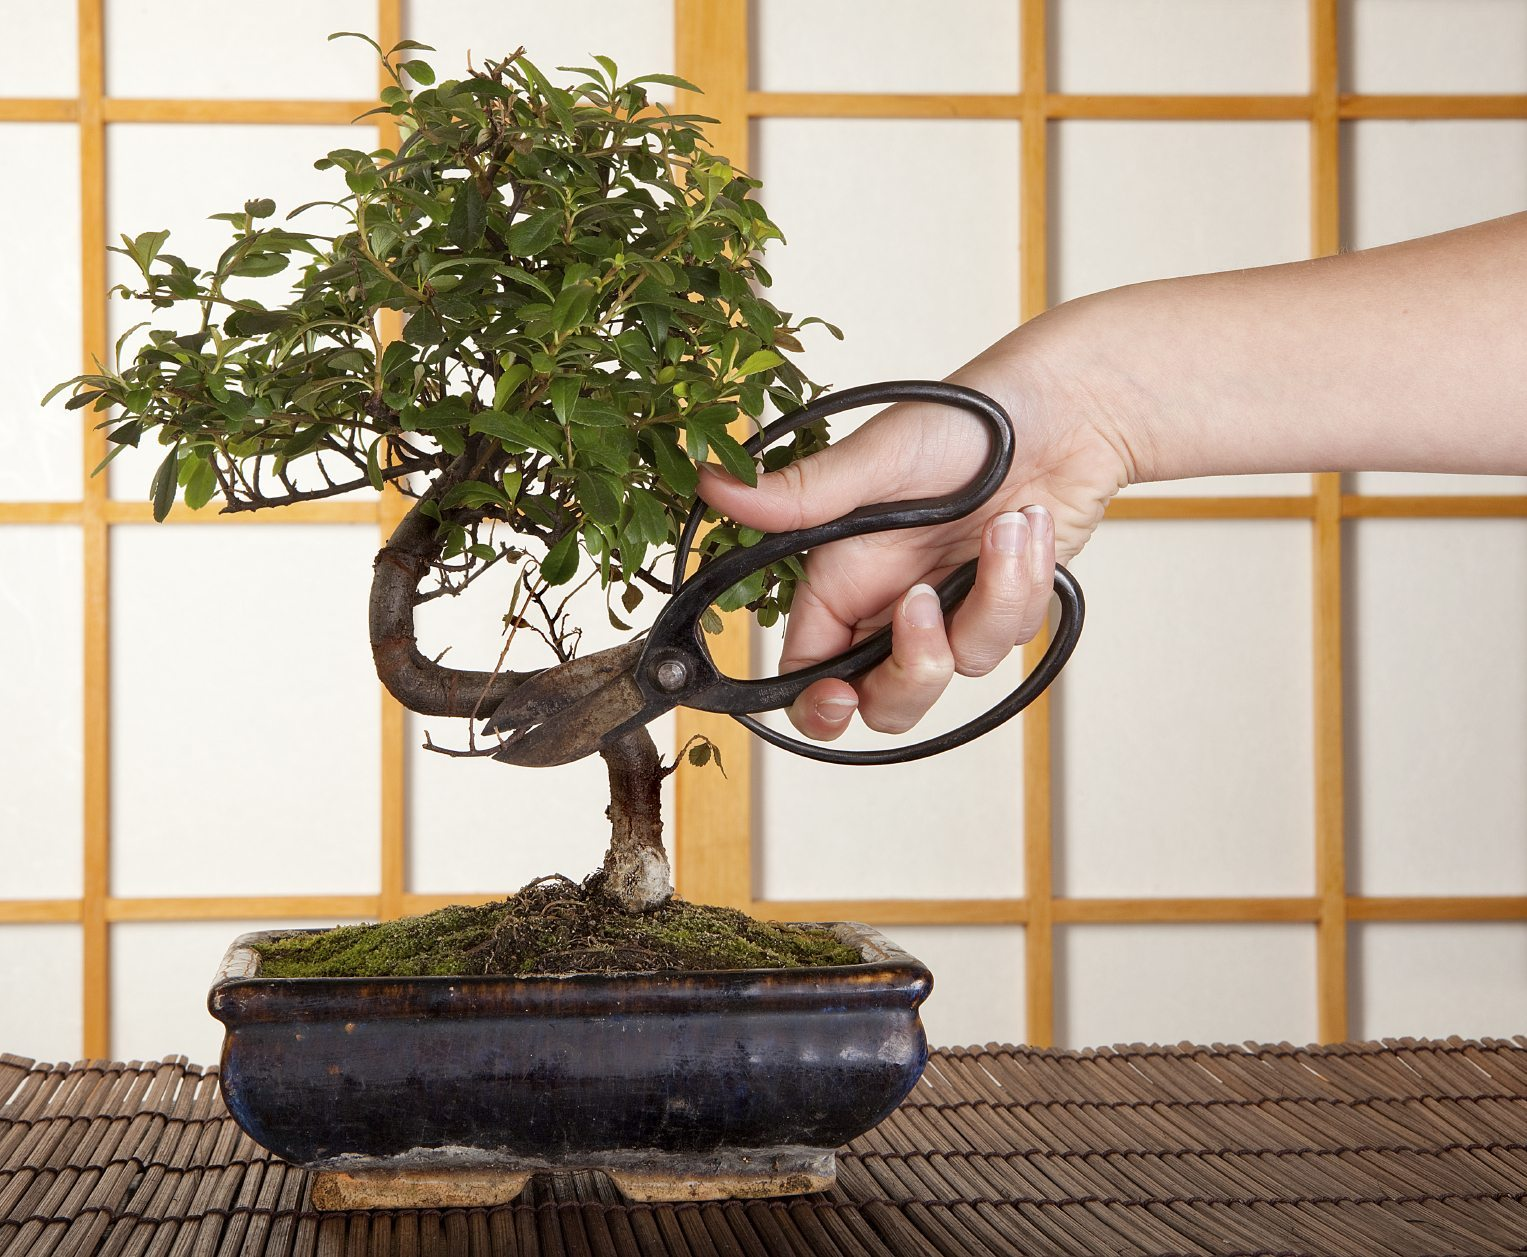 trim Bonsai tree